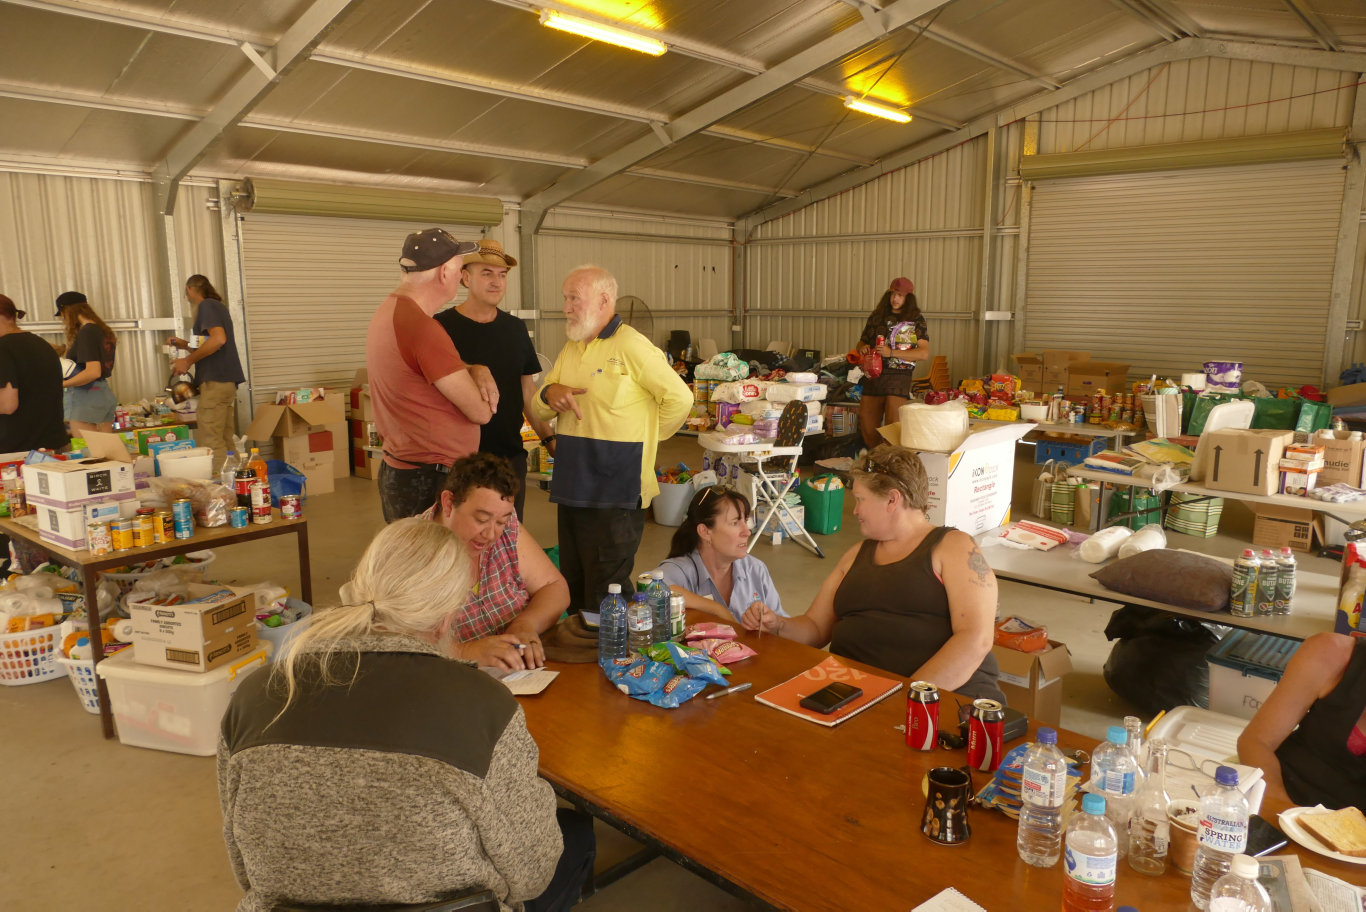 Nymboida residents co-ordinate distribution of donated goods in the canoe centre shed.